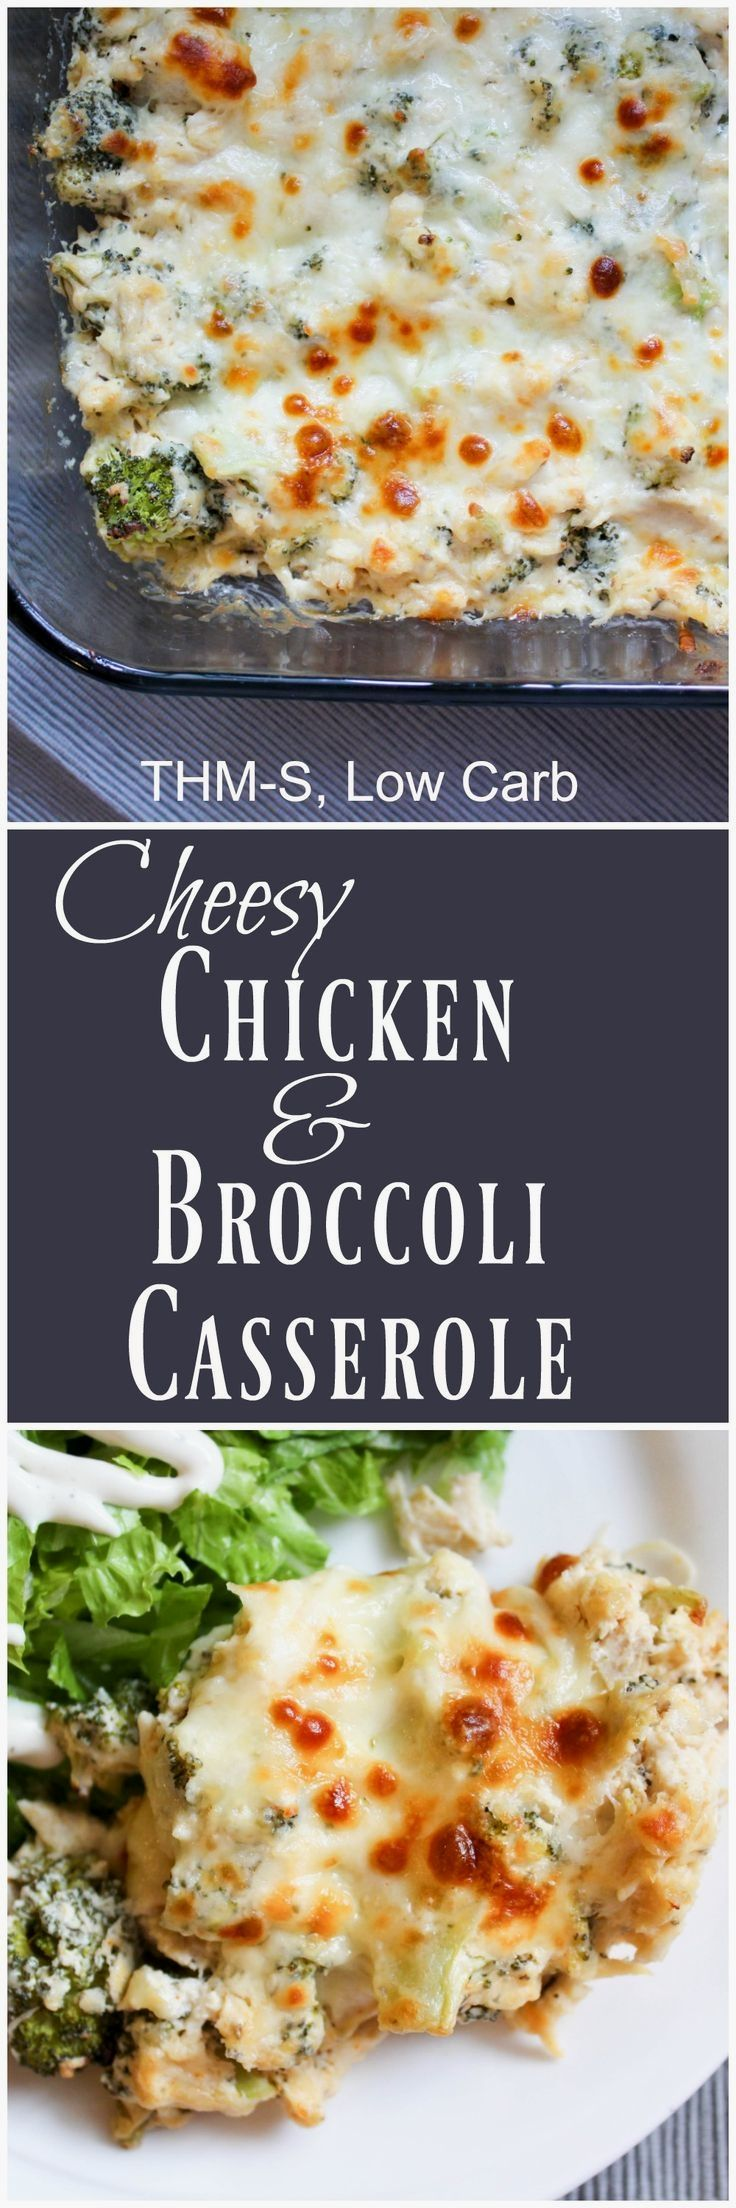 Ingredients 3 Cups Diced Cooked Chicken Breast 5 Cups Chopped Fresh Broccoli 8 oz. Cream Cheese, Softened 1 Cup Sour Cream 1/2 Cup Mayonnaise 1 Teaspoon Garlic Salt 1 Teaspoon Onion Powder 1/2 Teas… 15 Mouth Watering Keto Diet Friendly Casserole Ideas #keto_recipes #low_carb_recipes #Keto_diet #MooCarb.com